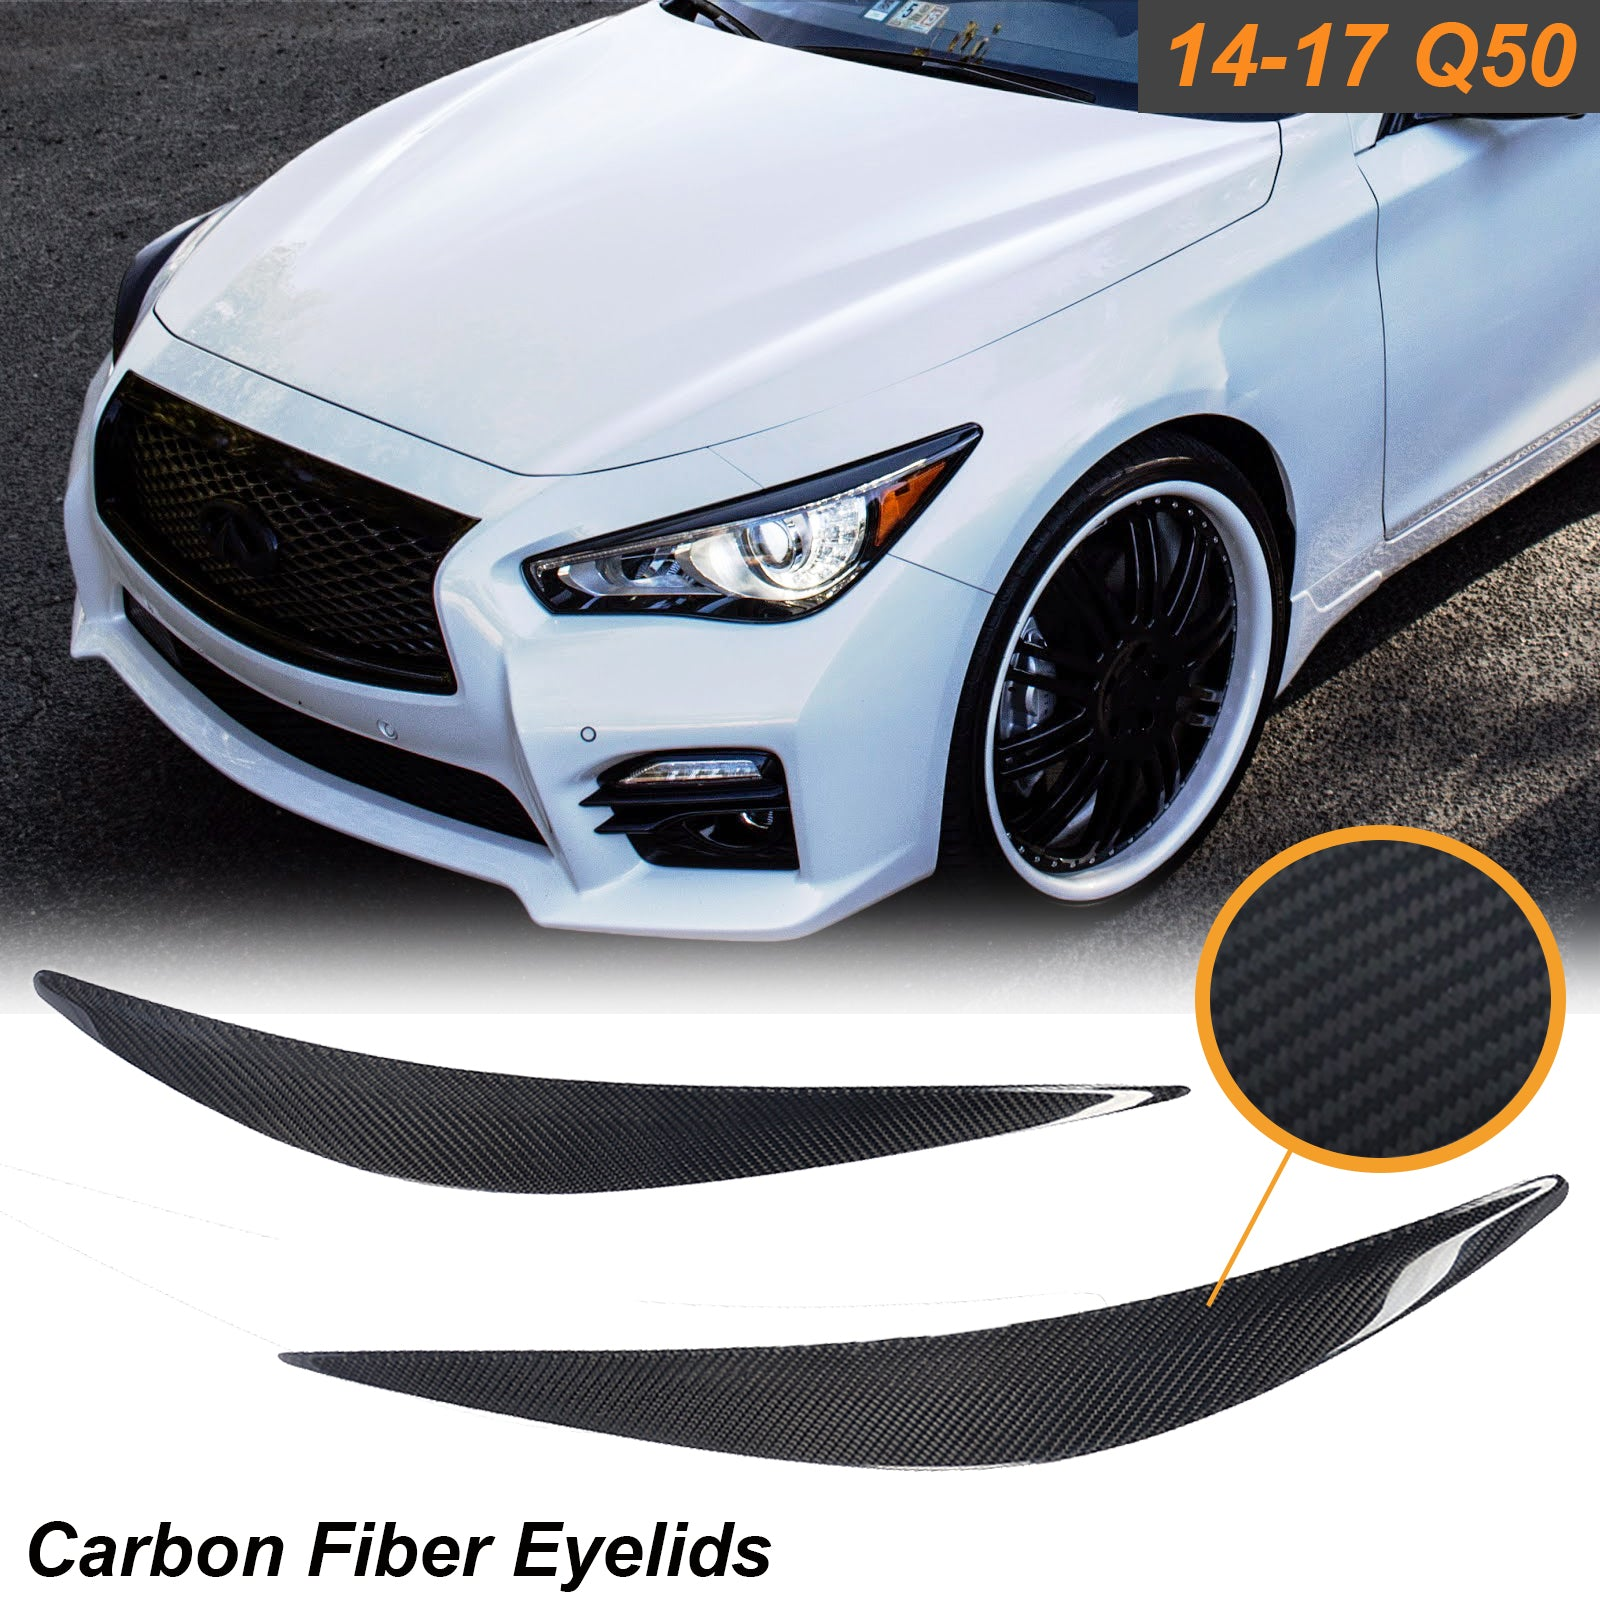 Carbon Fiber Eyelid Covers Headlight Eyebrow Lids Fit Infiniti Q50